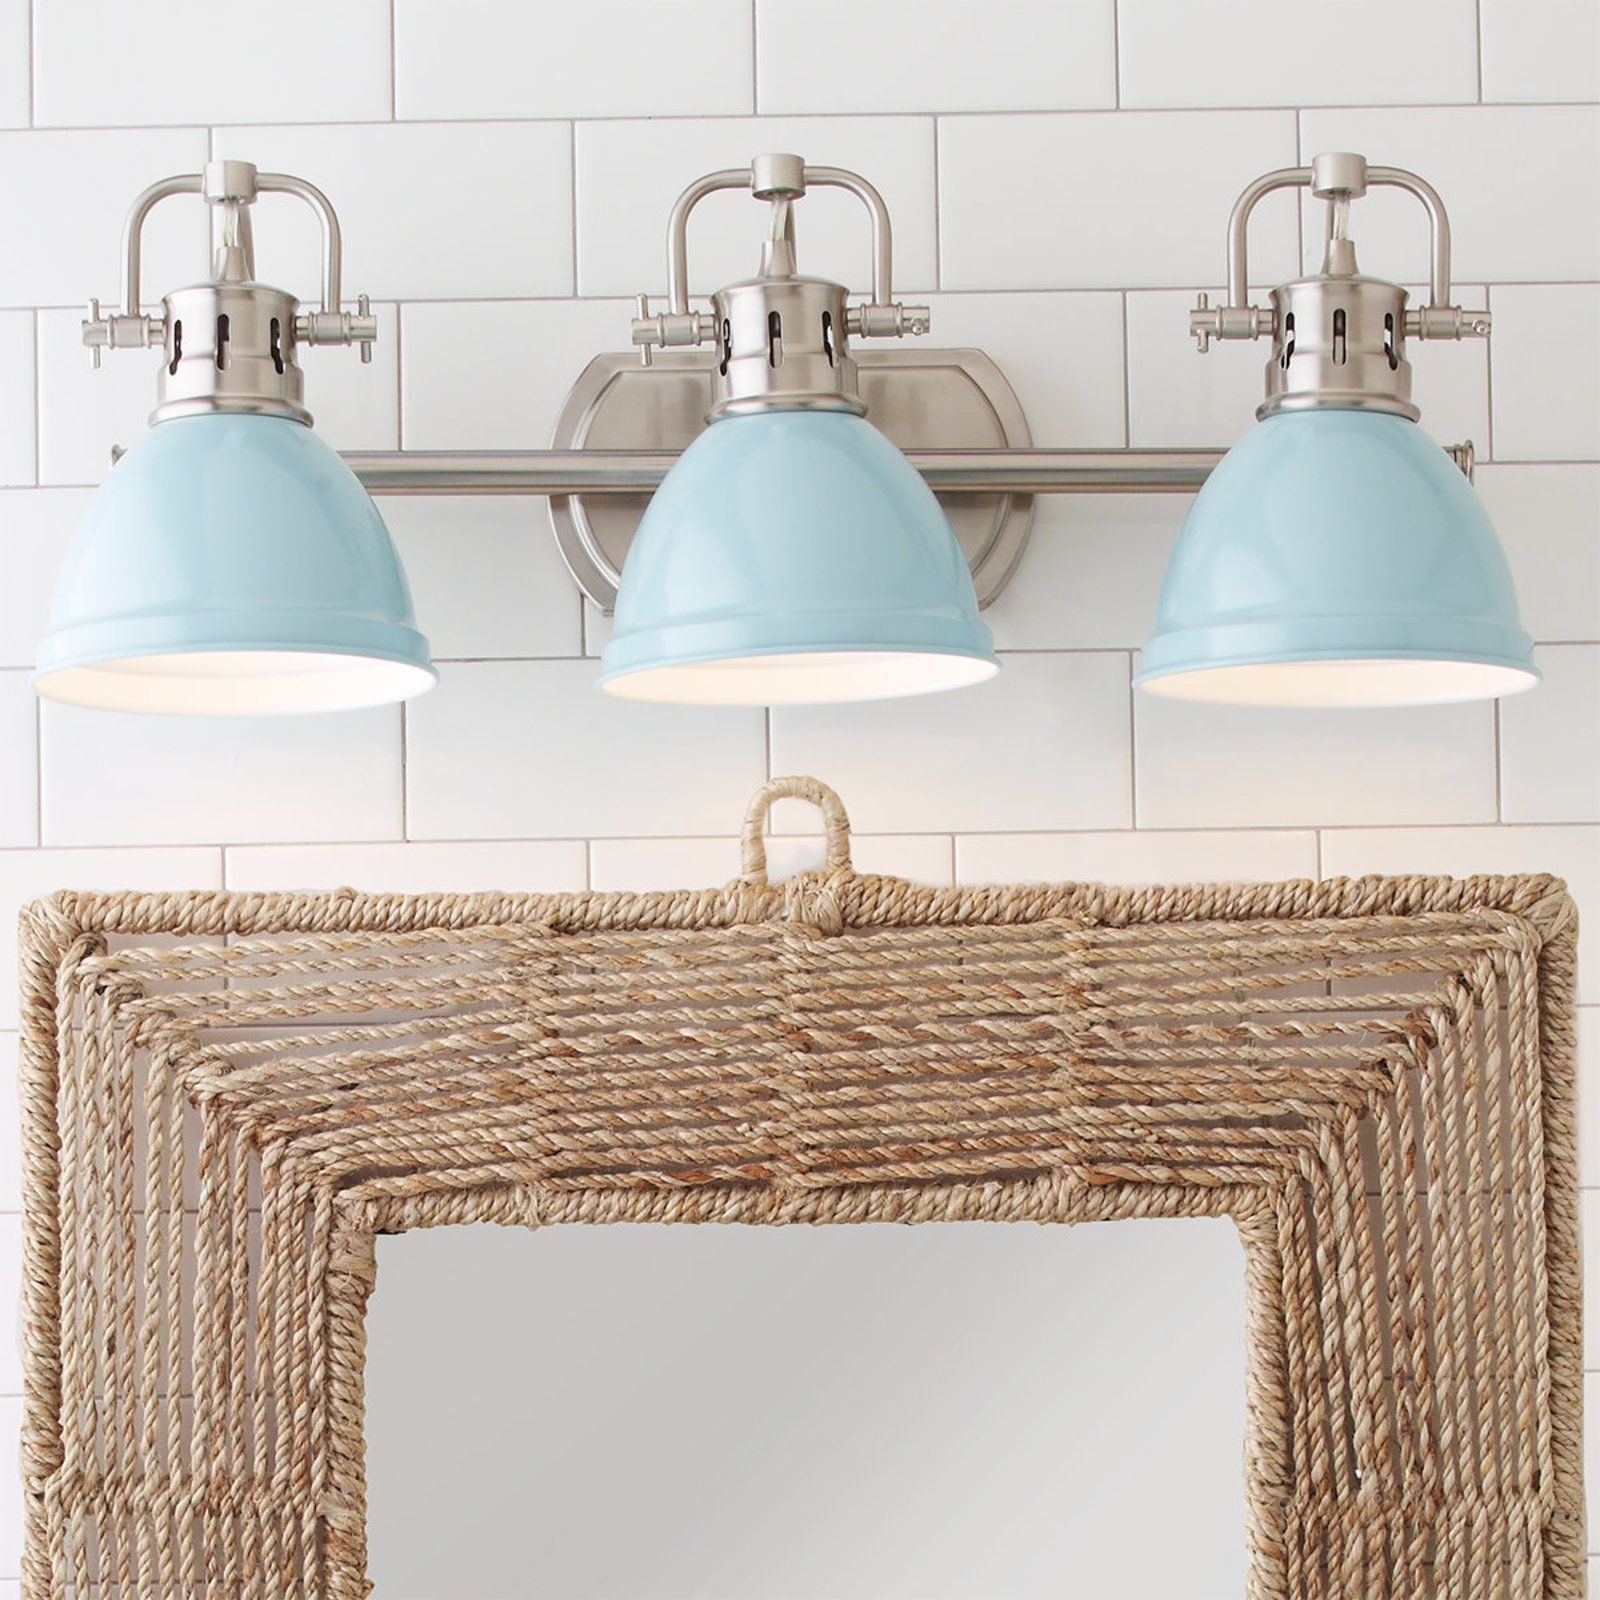 The Duncan Bathroom Vanity Light features a simple classic